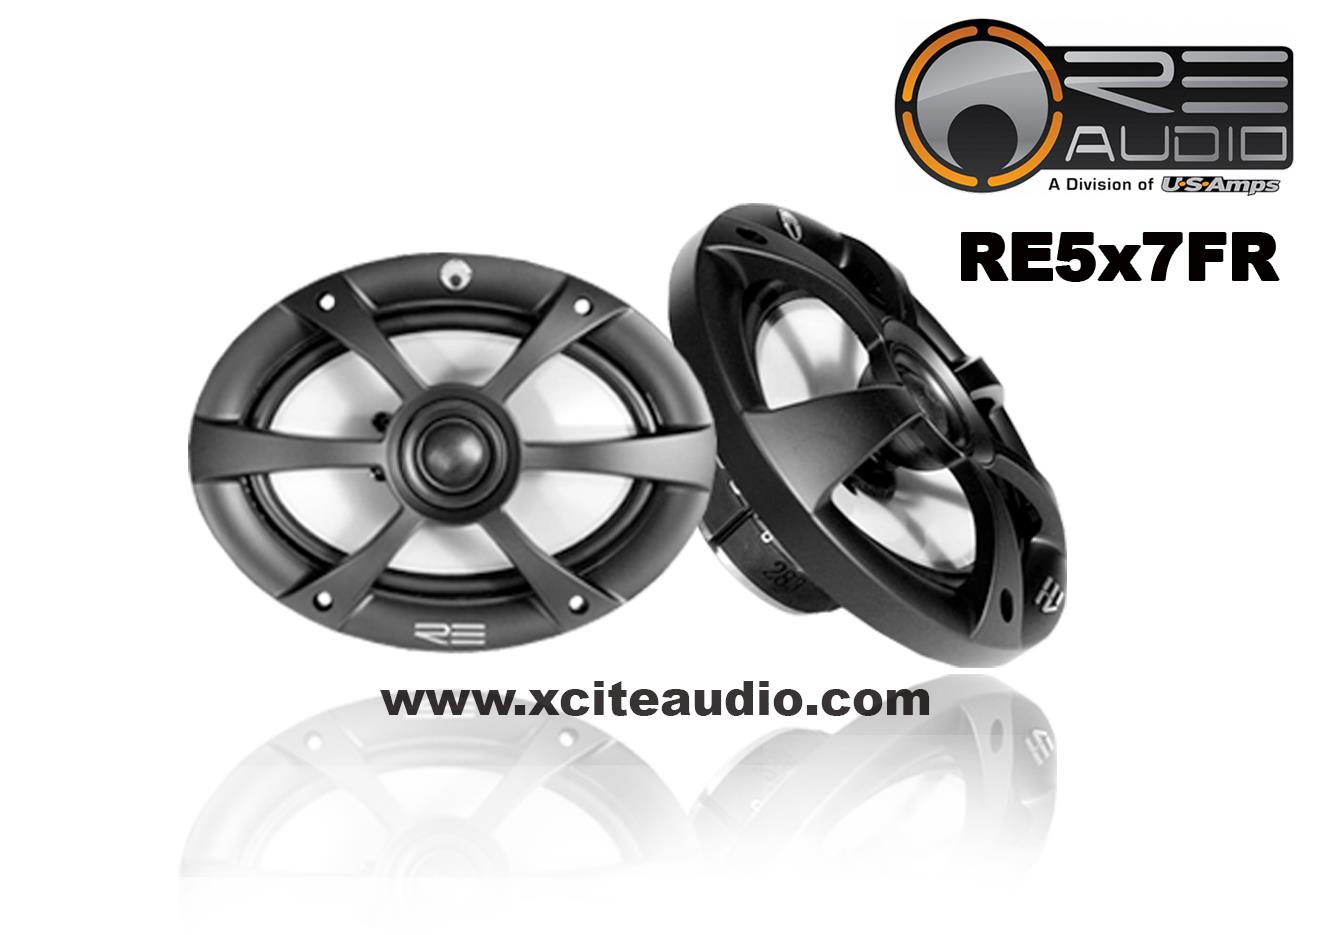 RE Audio RE5x7FR 125W 2-Way Coaxial Car Speakers